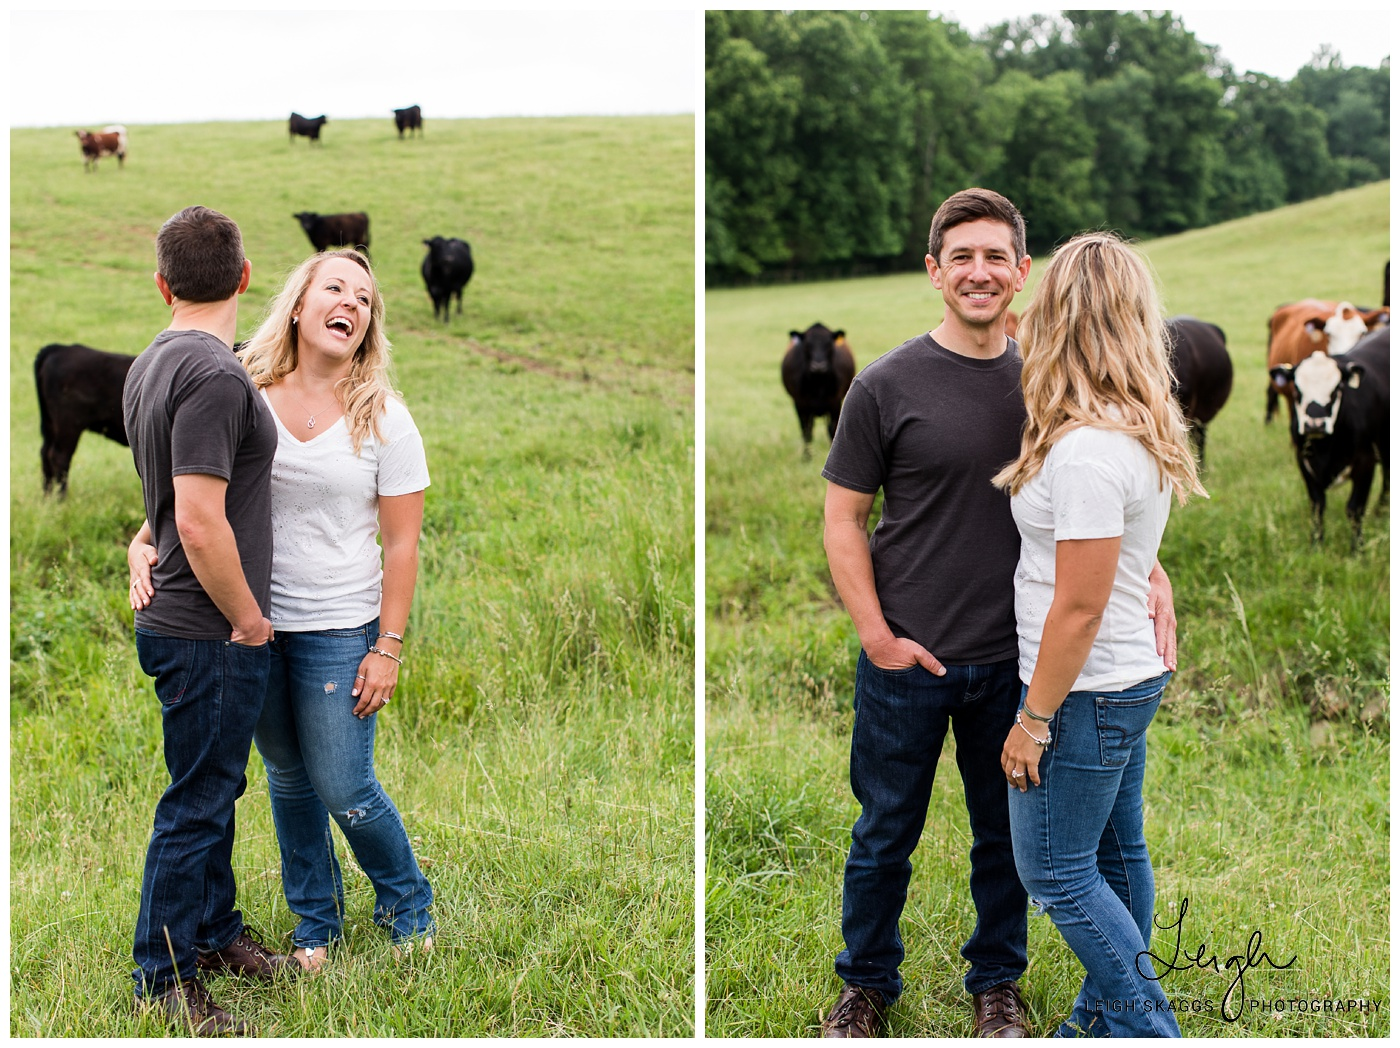 Heather & Keith | Oak Creek Farm Engagement Session